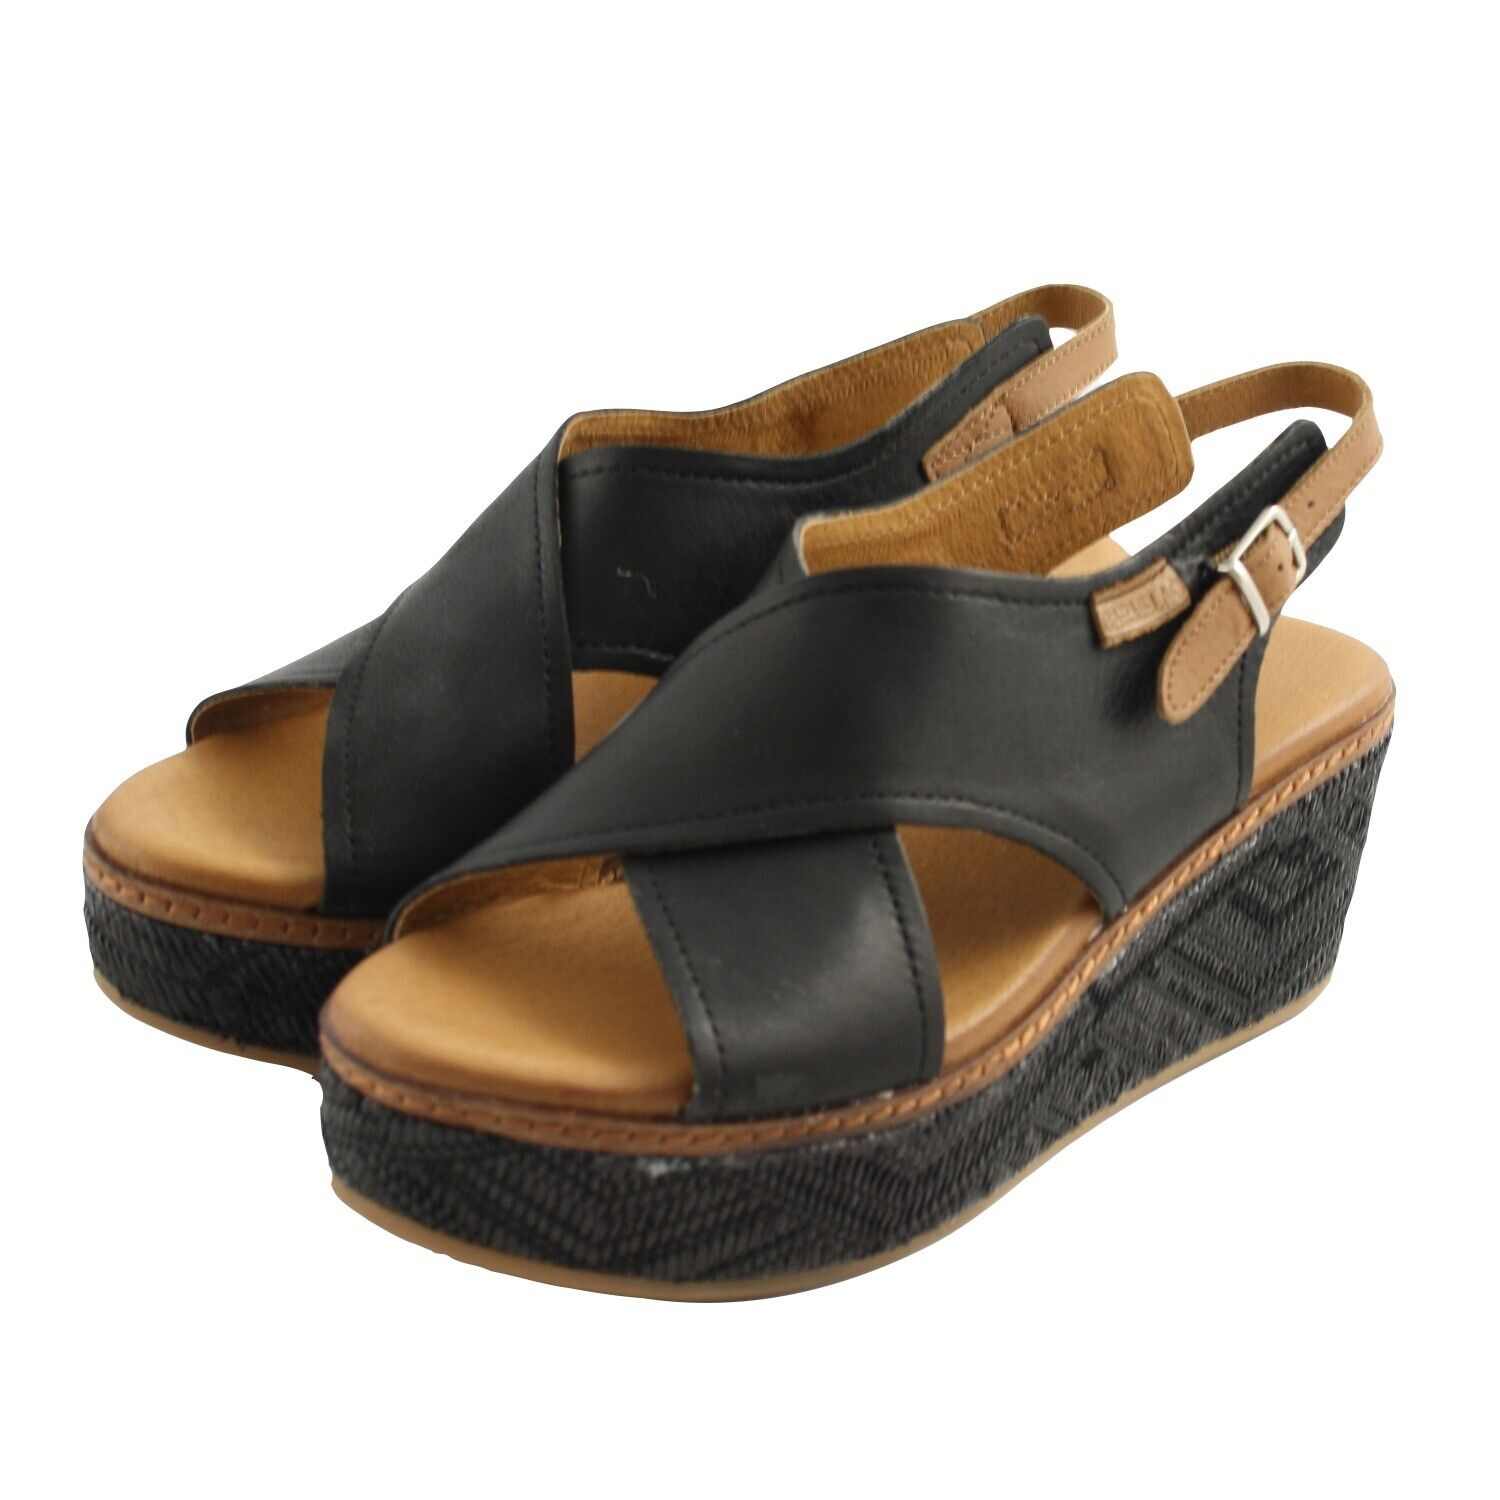 Summer sandals shoes CARMELA womens leather black and brown leather comfortable wedge